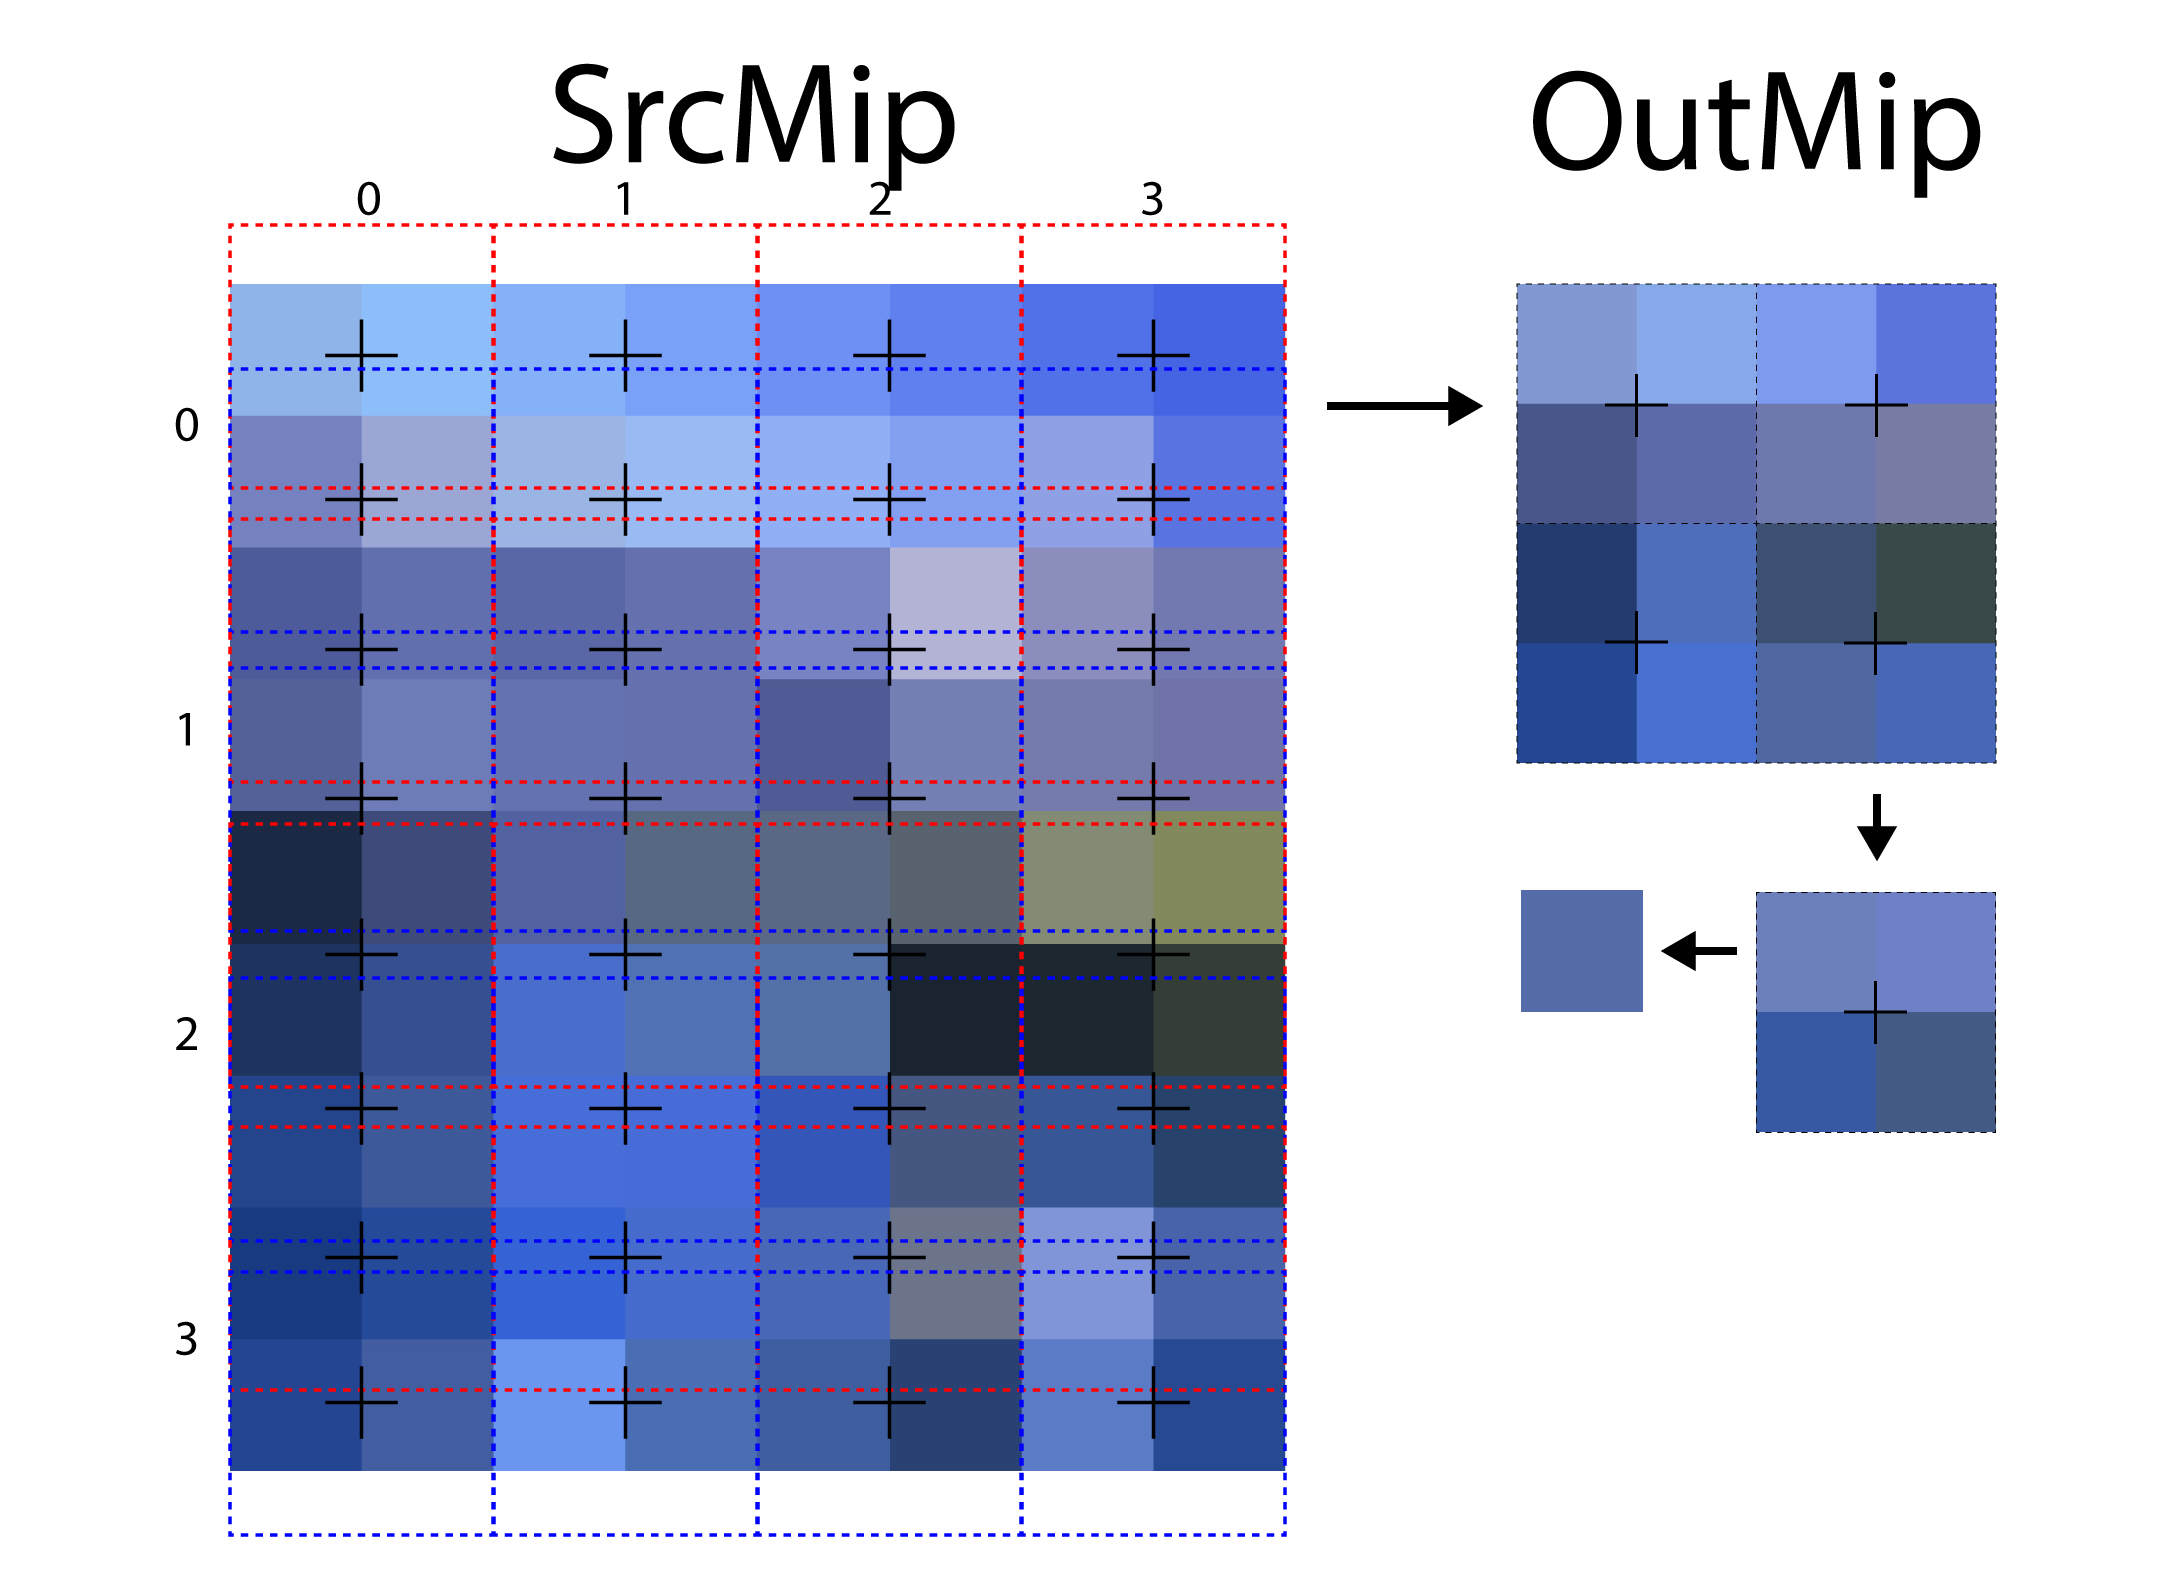 When downsampling a texture with an odd height, multiple samples in the V texture coordinate axis are blended to produce the final result.